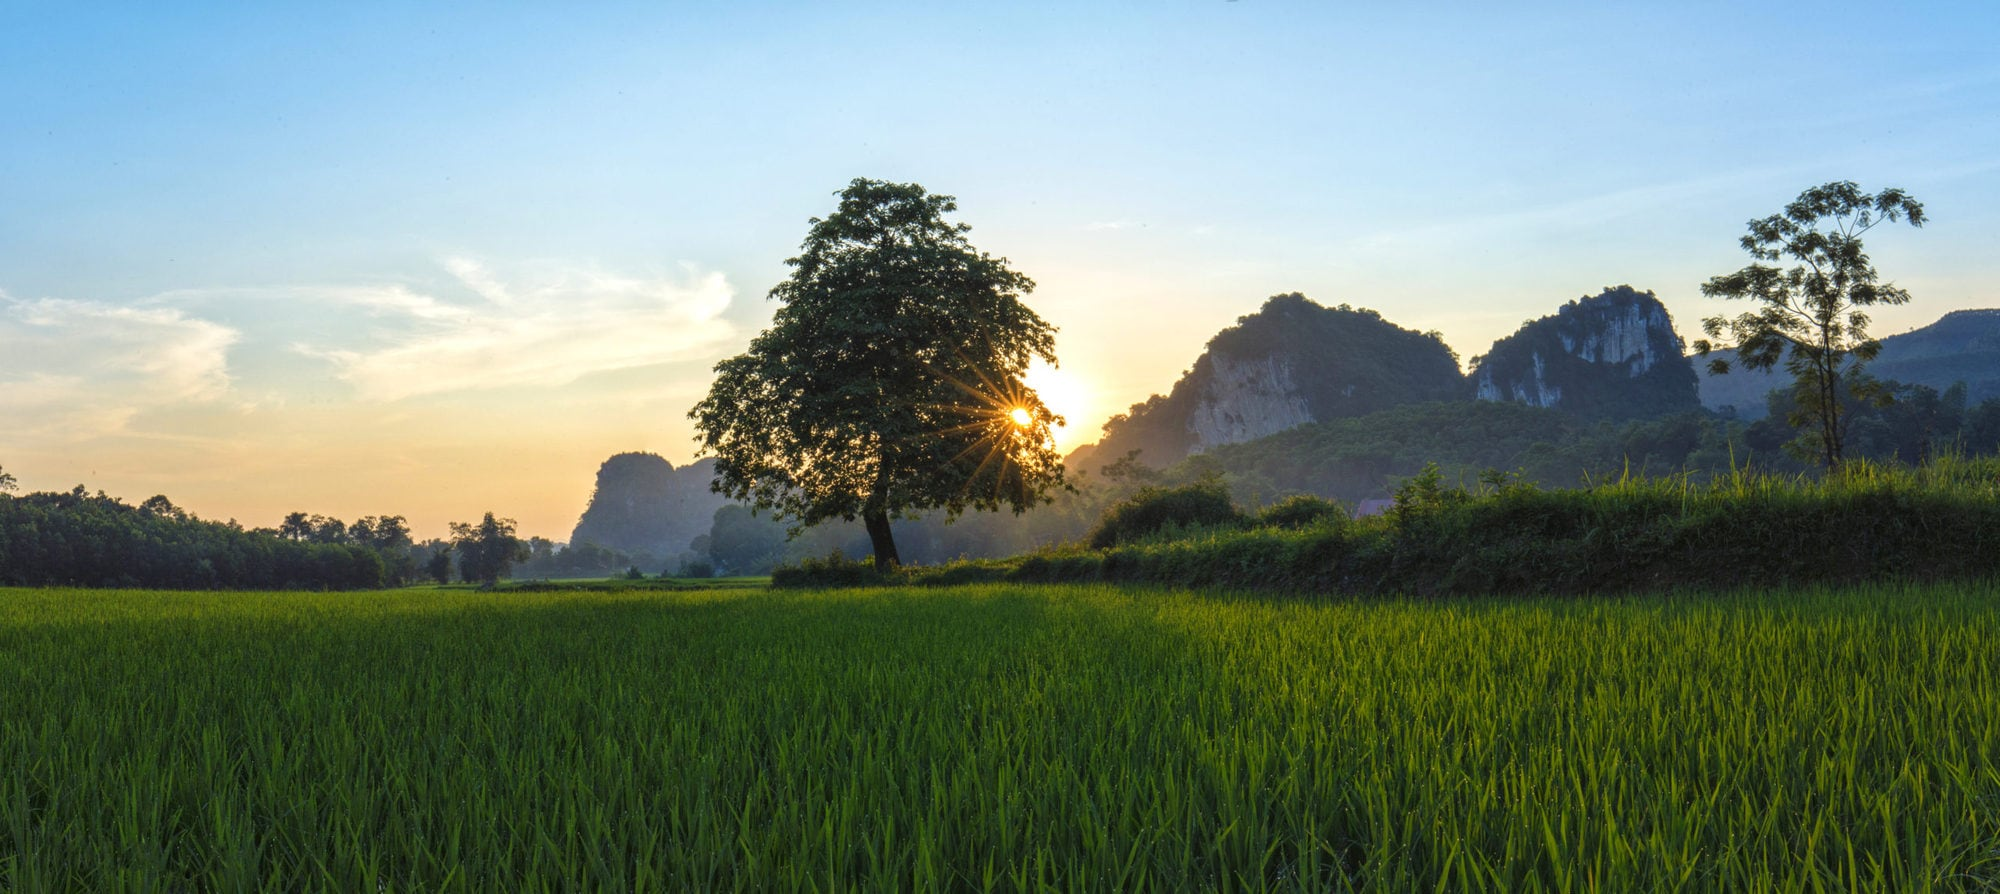 Landscape in Hoa Binh province, northwest of Vietnam (photo credit: ILRI/Vu Ngoc Dung)